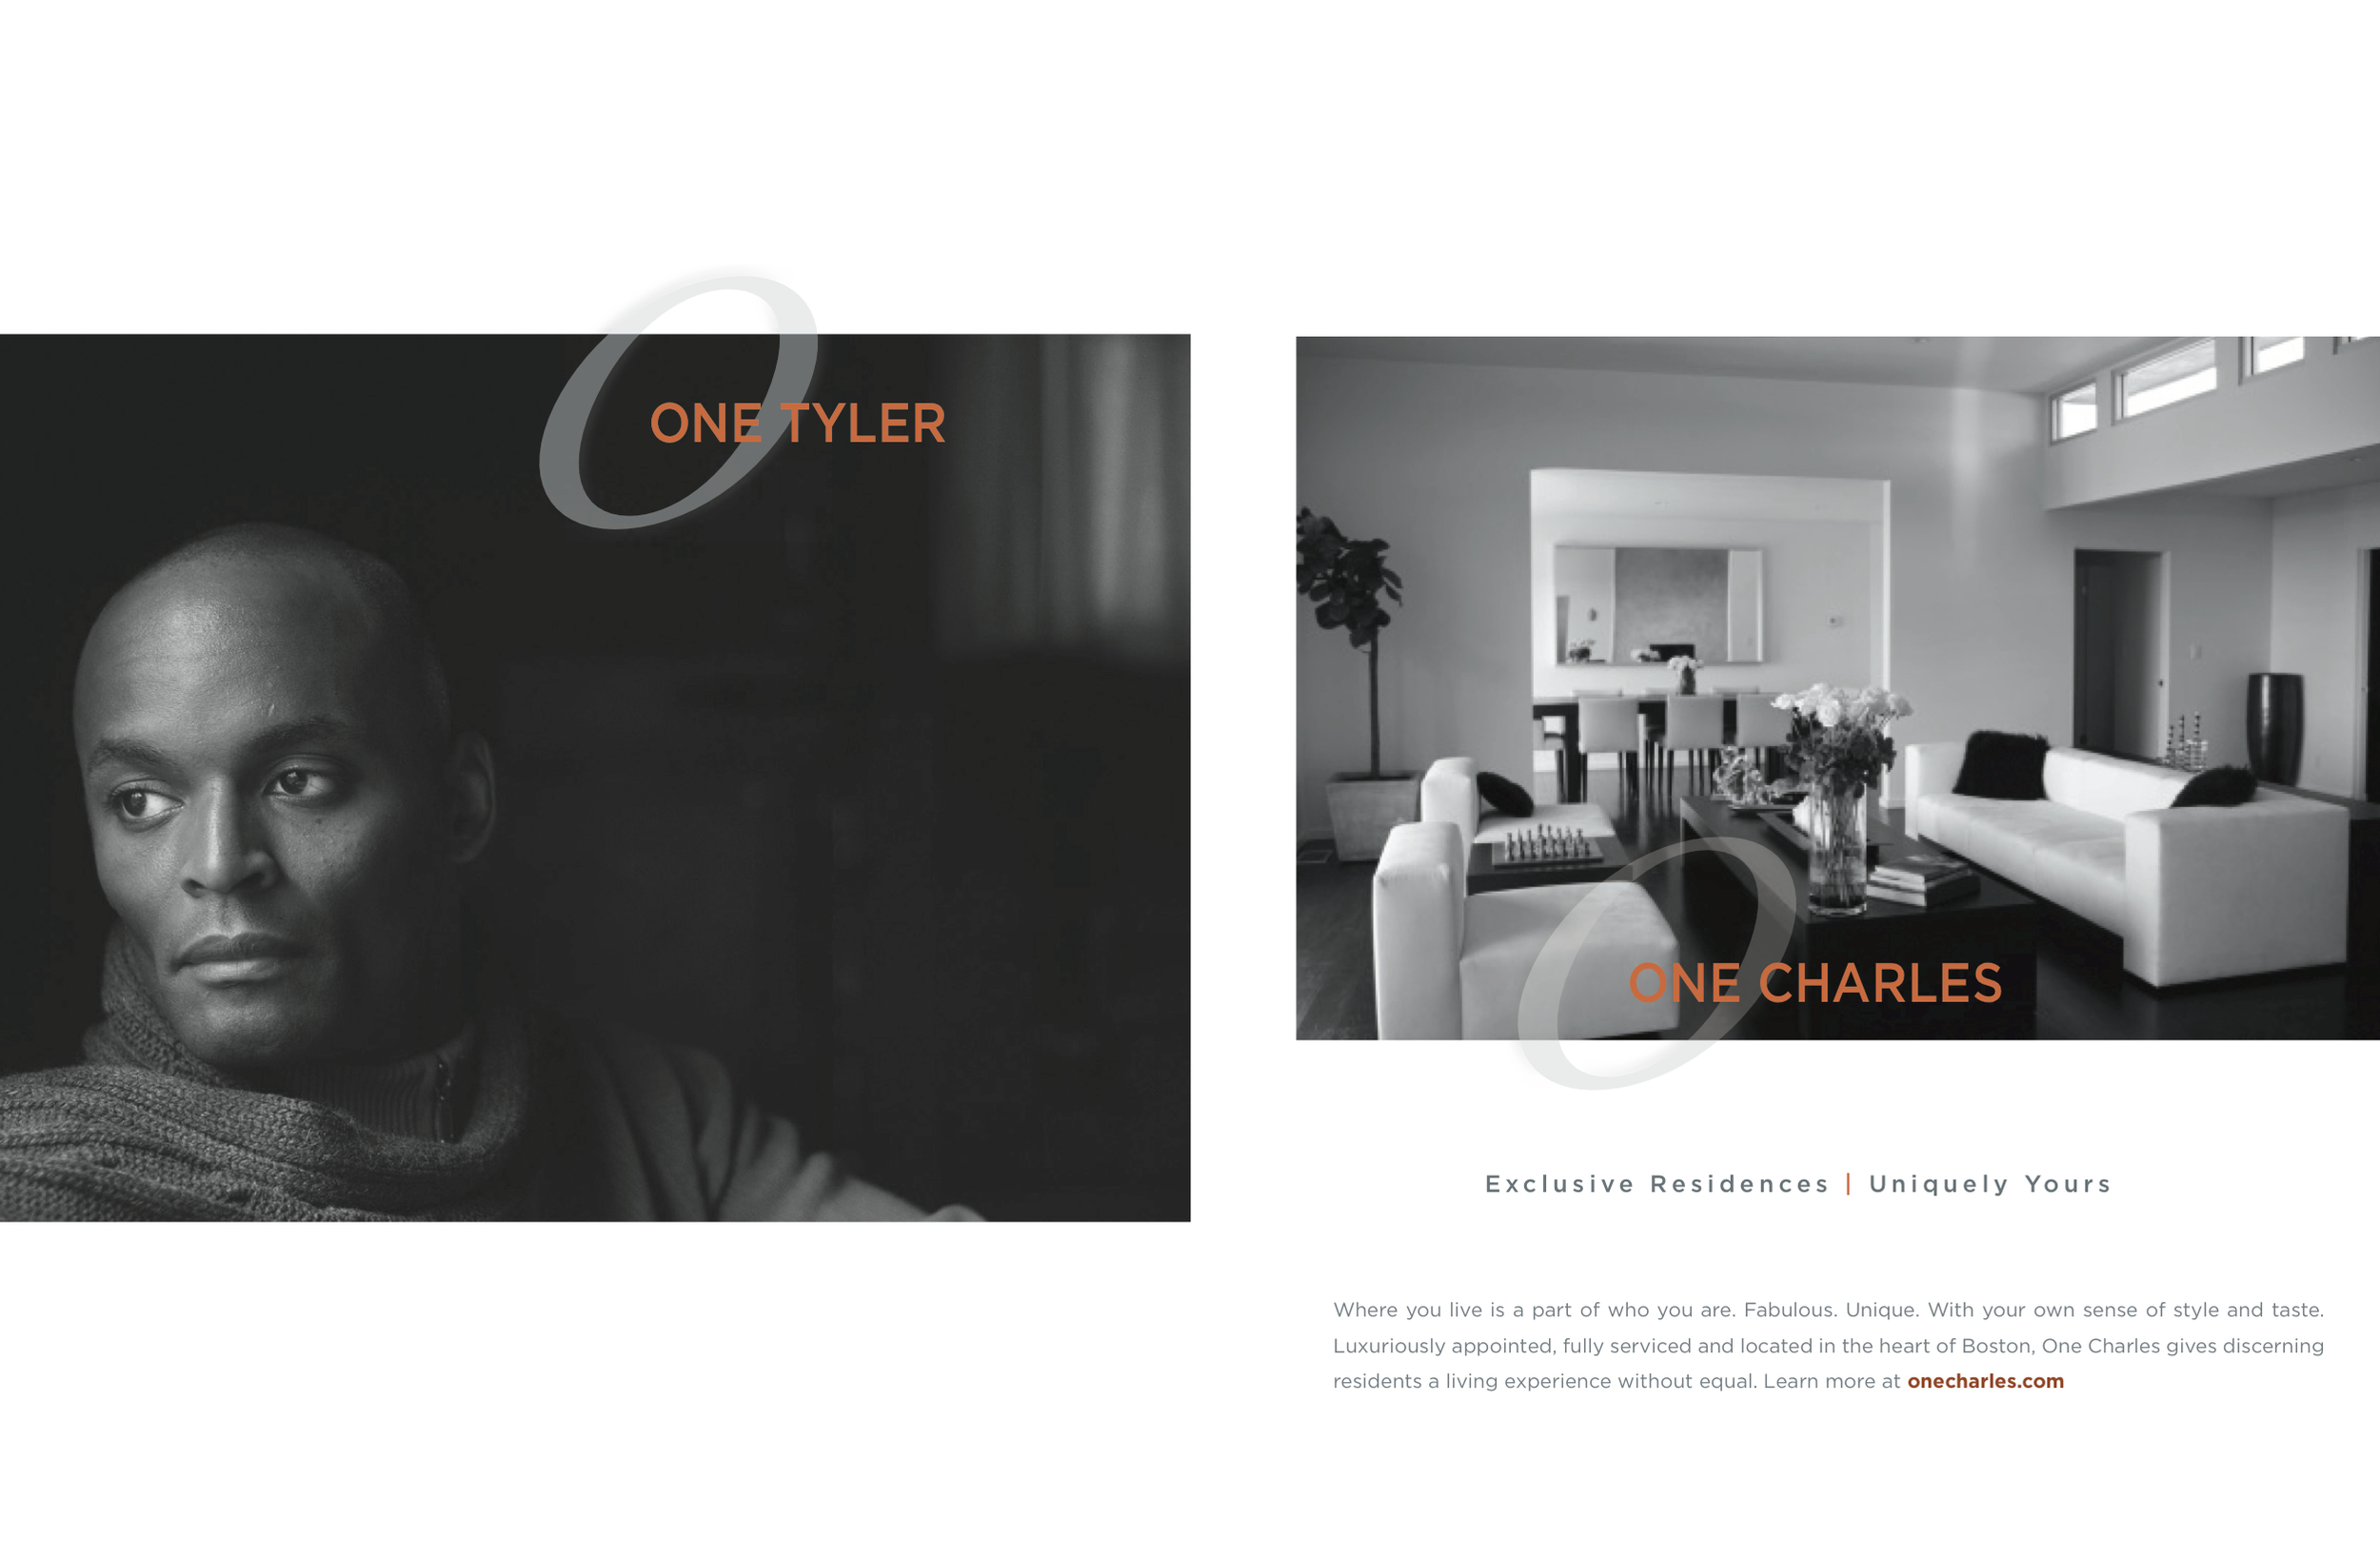 Brand Ad for One Charles, a Boston luxury residence